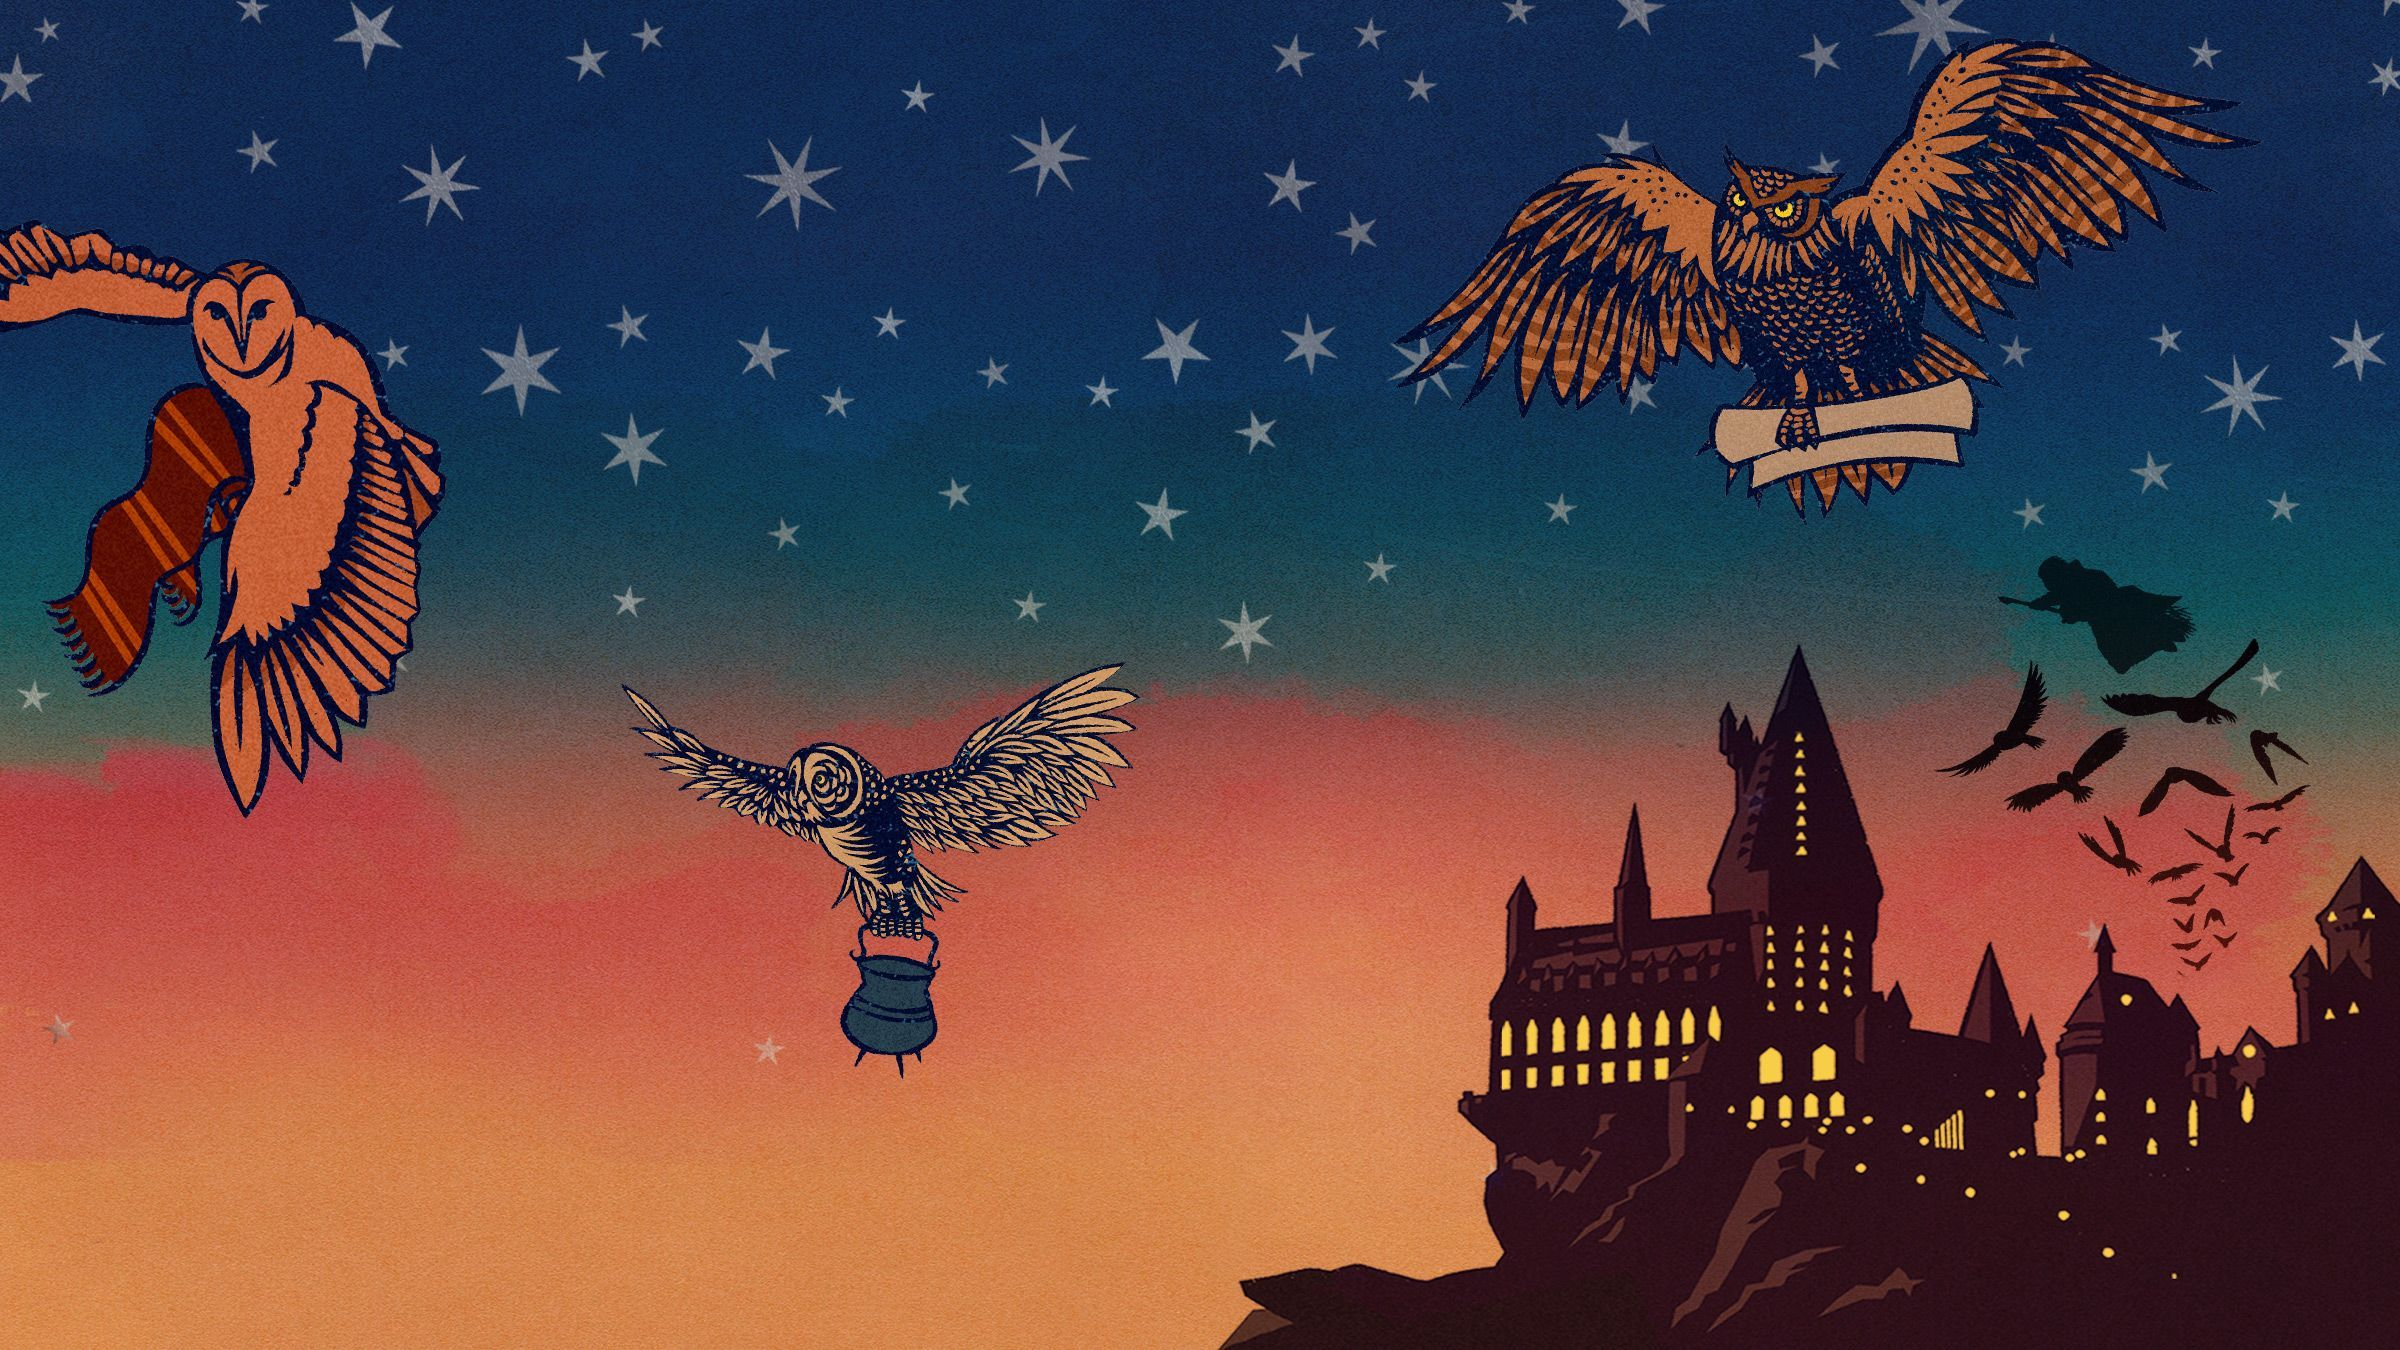 Take A Fantasy Trip To The Wizardingworld Of Harrypotter Craft Magic At Home And Let The Sortinghat Discover Your In 2020 Hogwarts Wizarding World Harry Potter